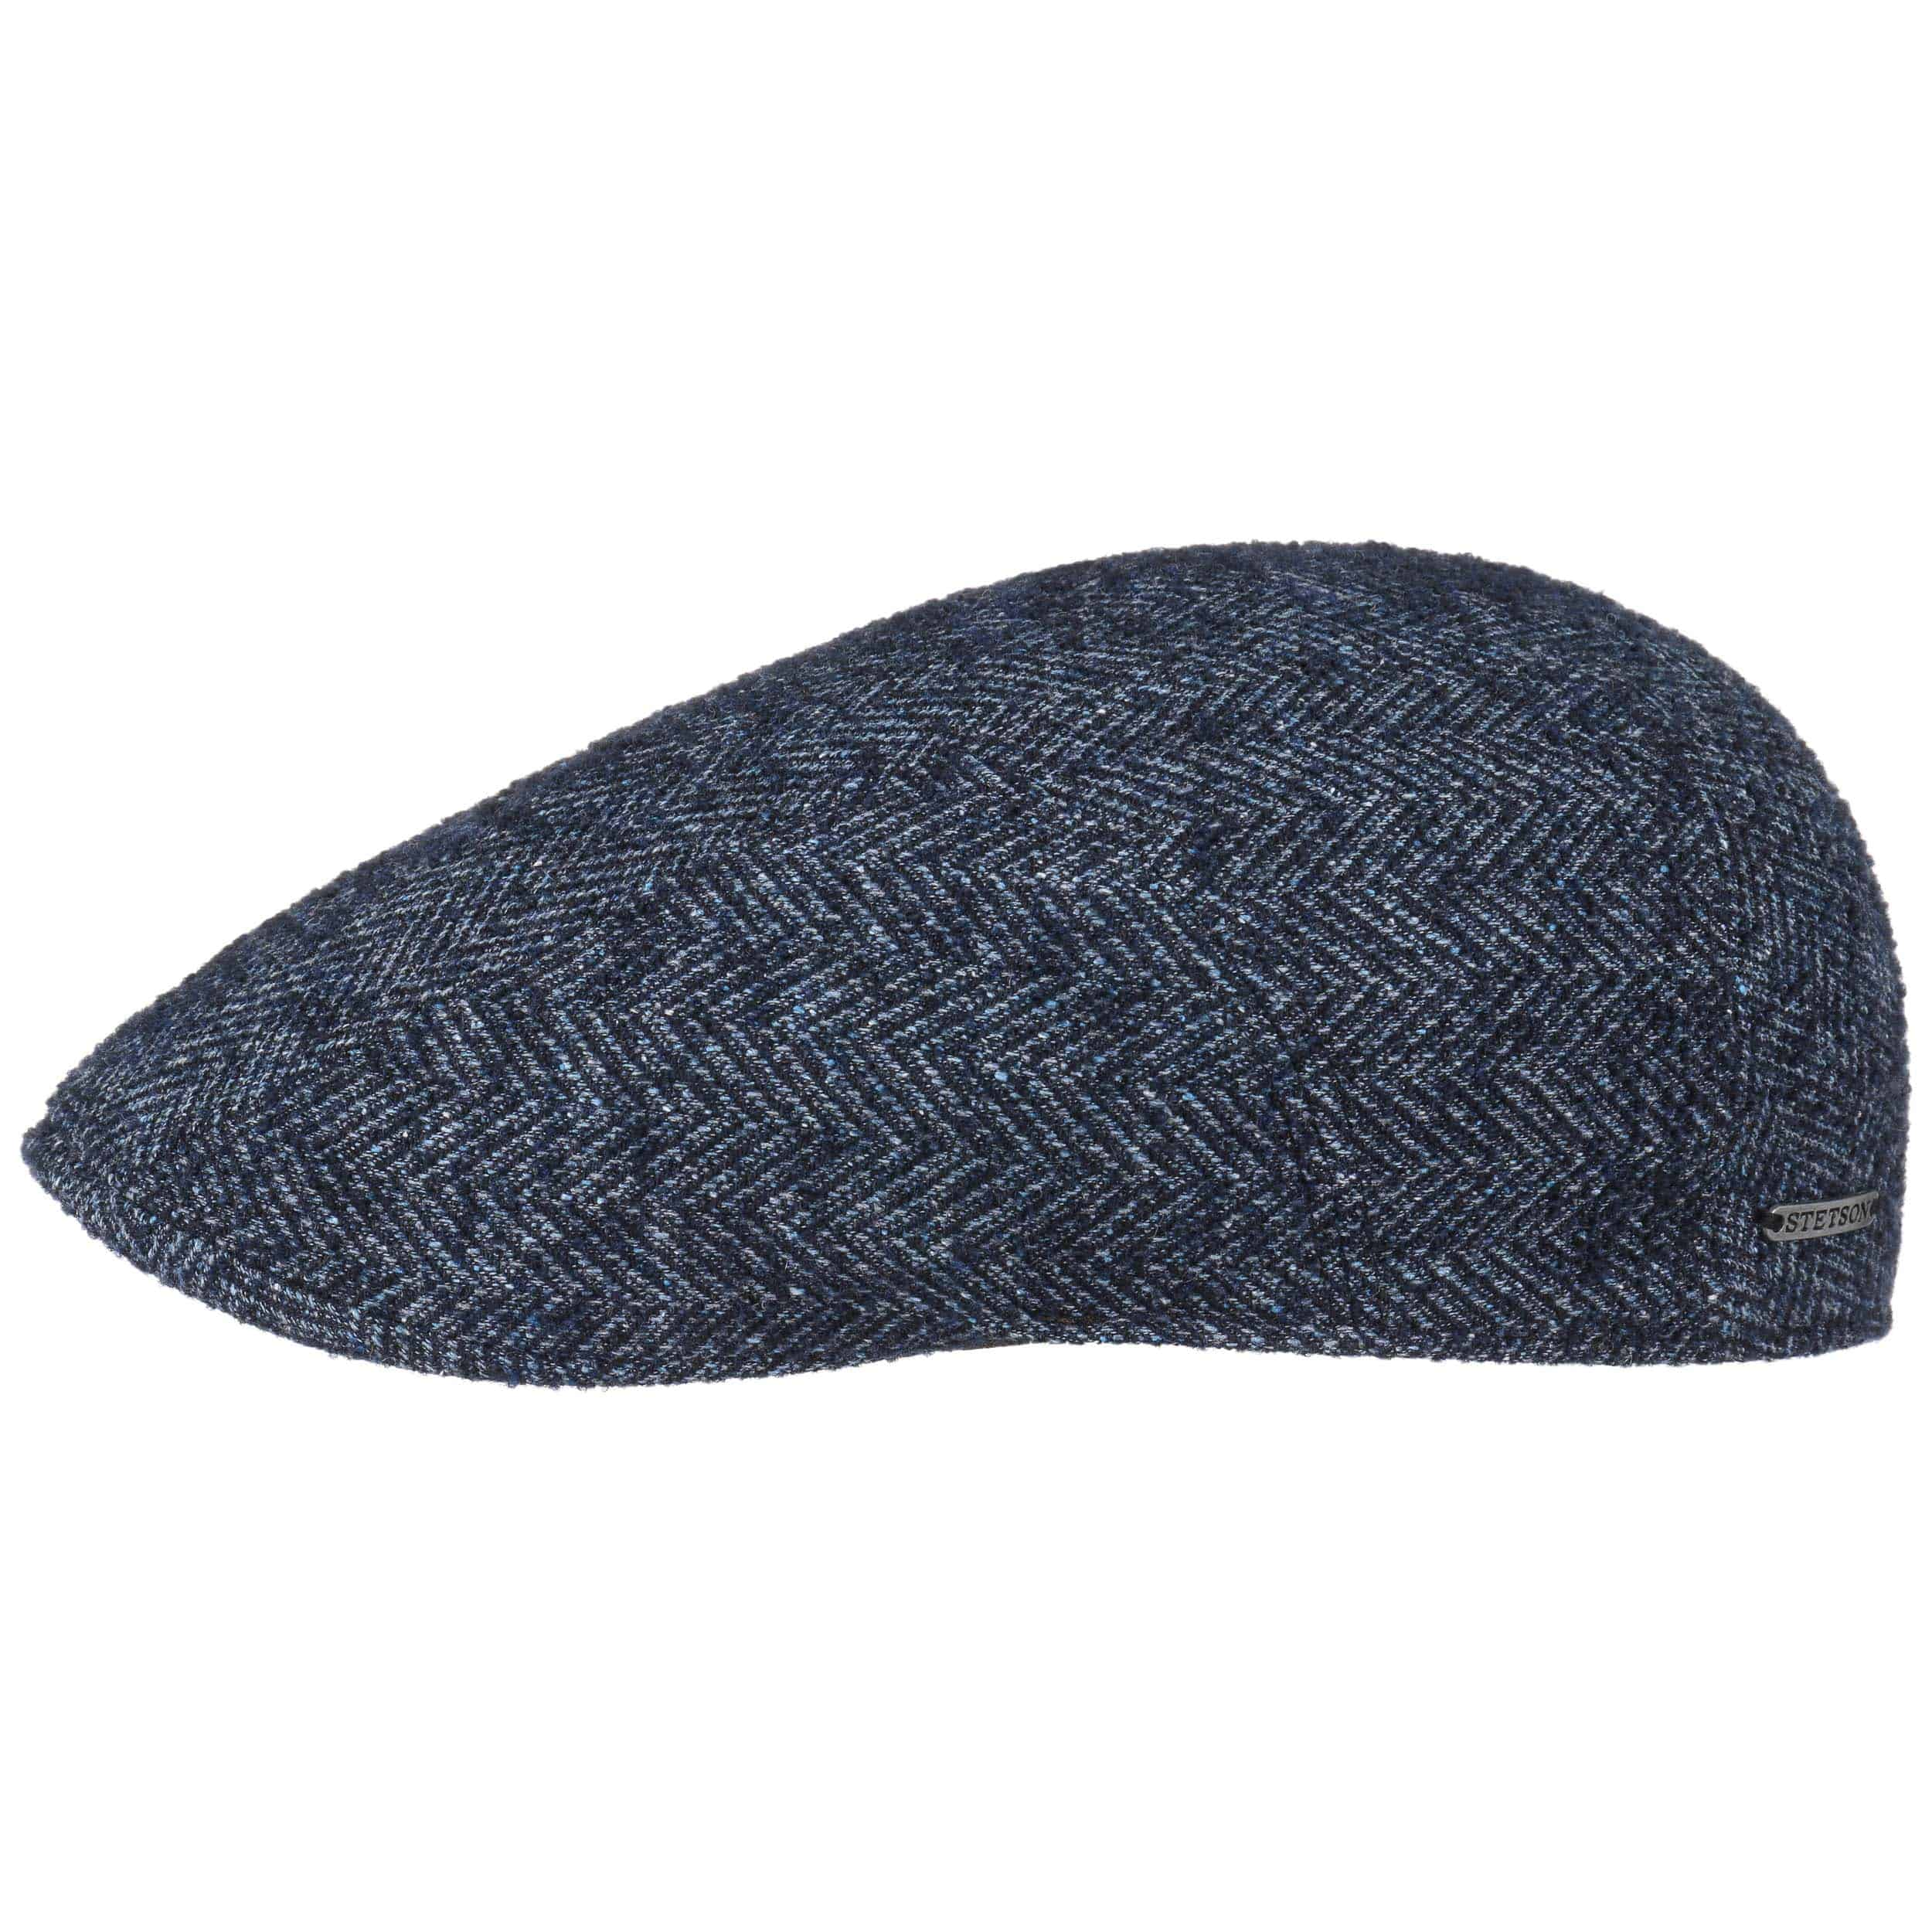 ... Coppola Gary Virgin Wool by Stetson - blu 1 b8060629f721